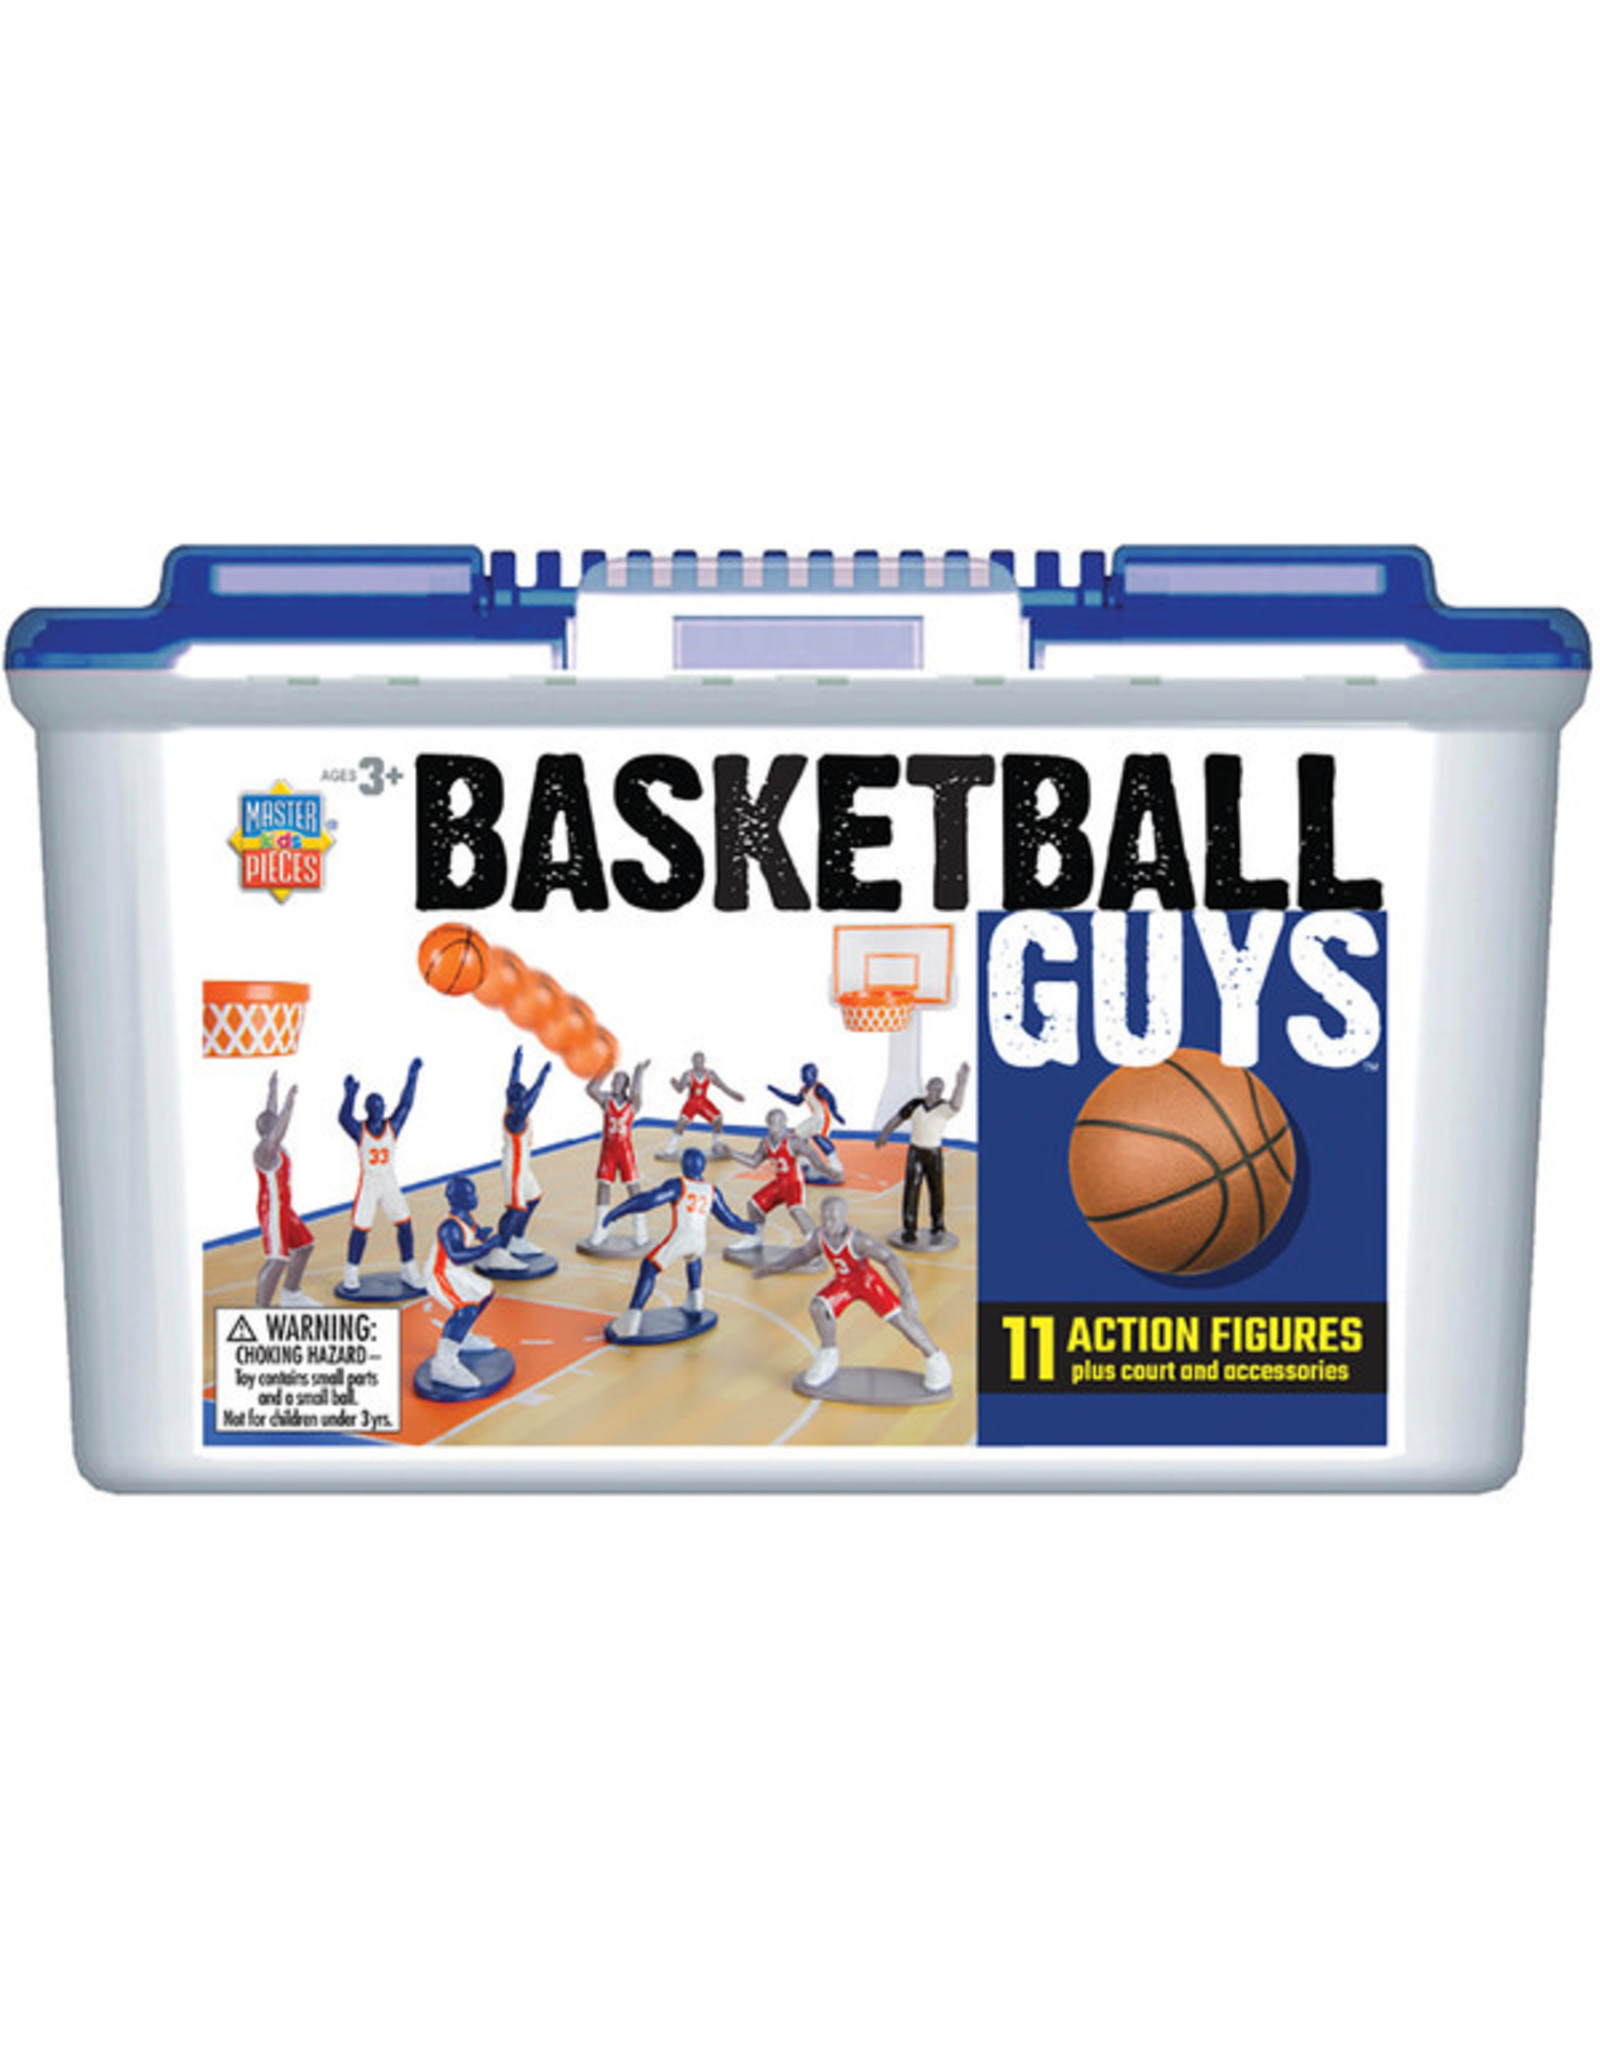 MASTER PIECES PUZZLE Basketball Player Blue/White vs.Red/Gray